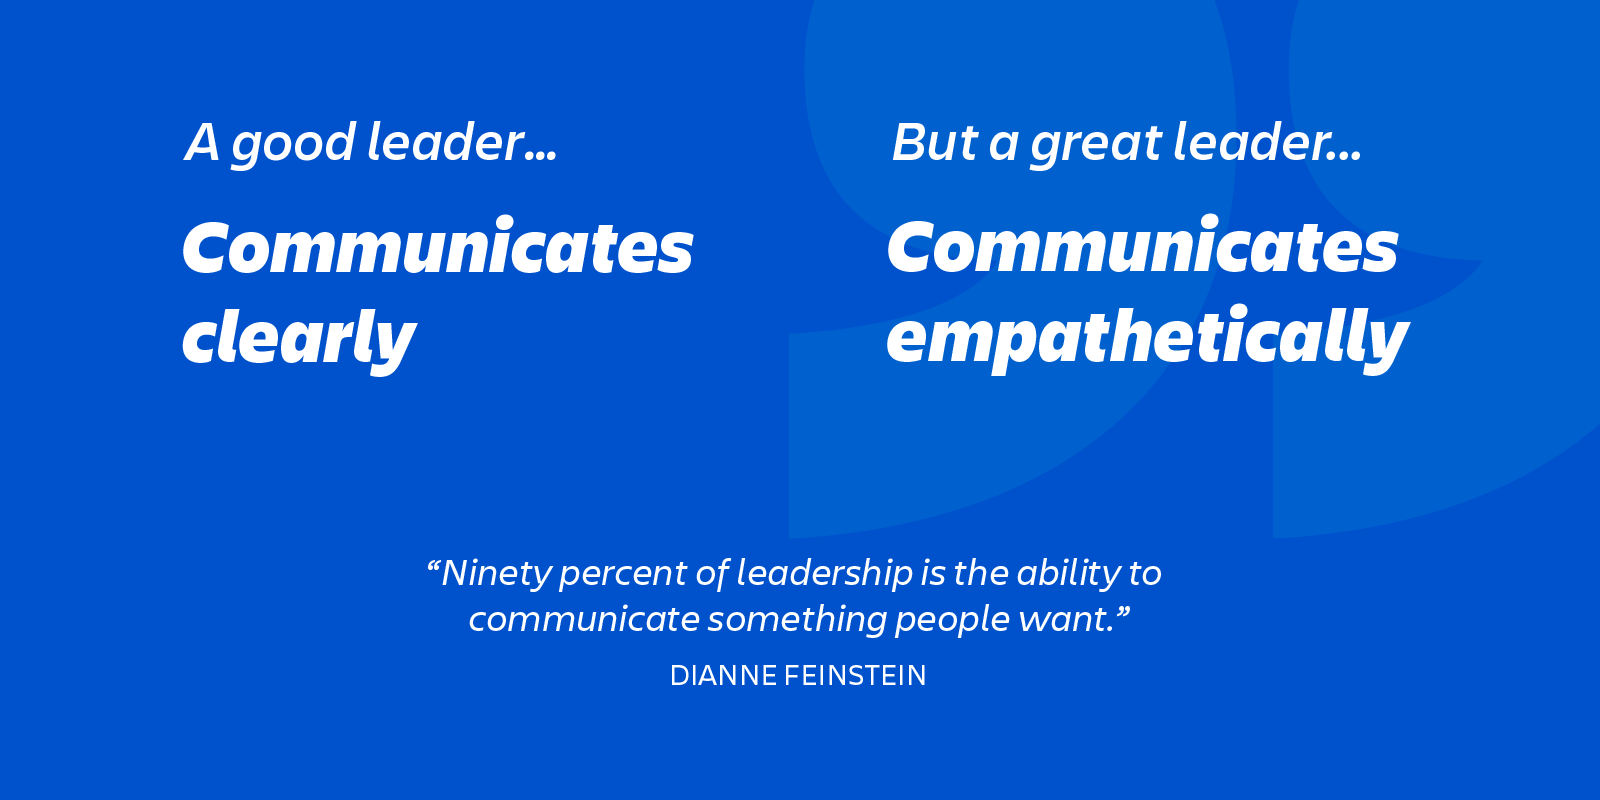 great leaders are empathetic communicators